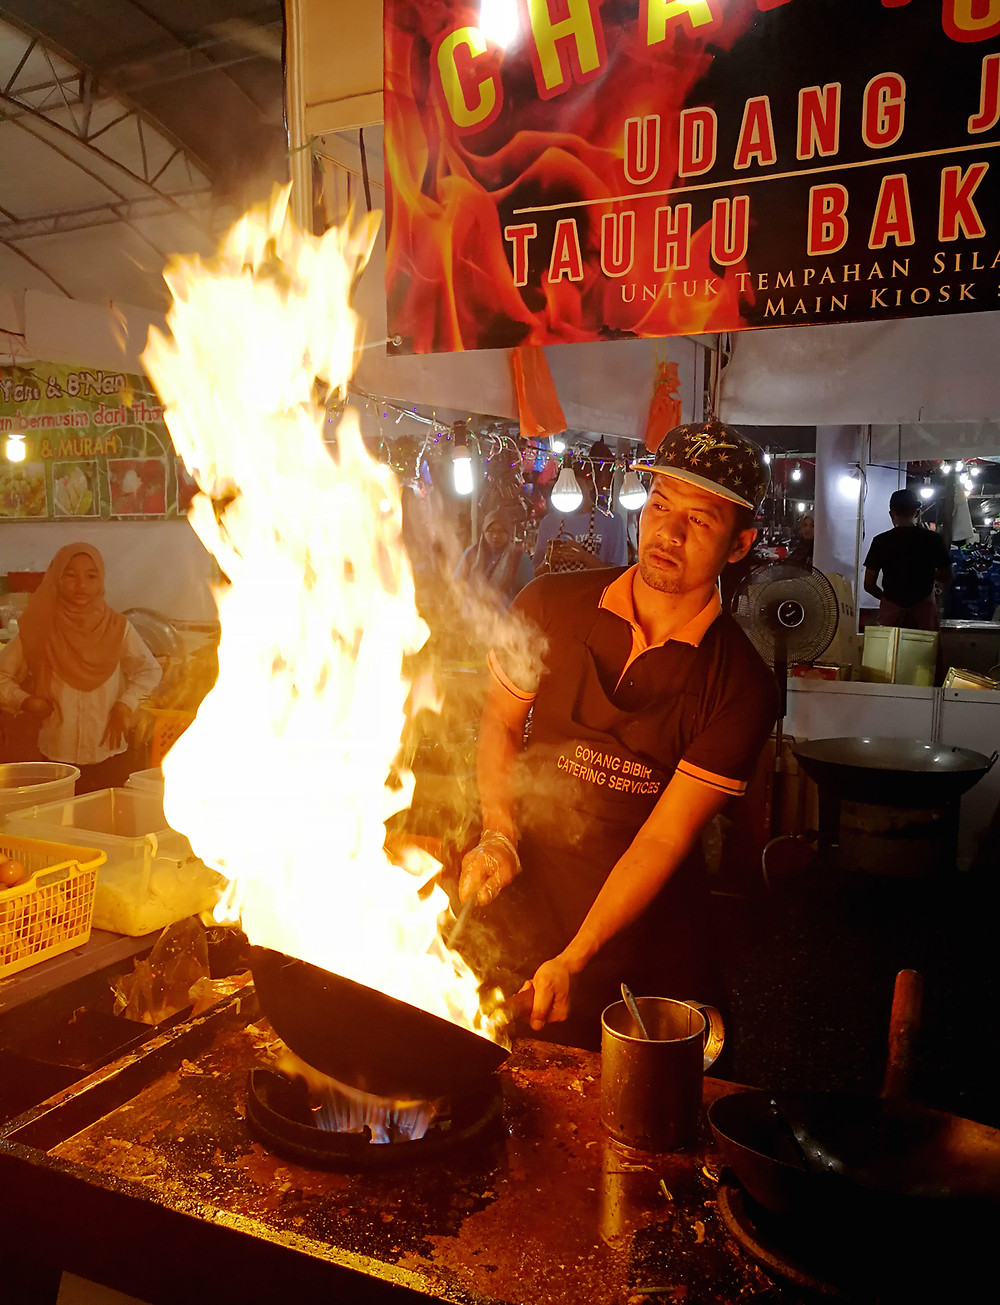 Photograph of the Malay Thai Food Festival at Paroi sports complex of Char Kuay Teow being cooked, taken by Nic falconer nicaliss of serembanonline